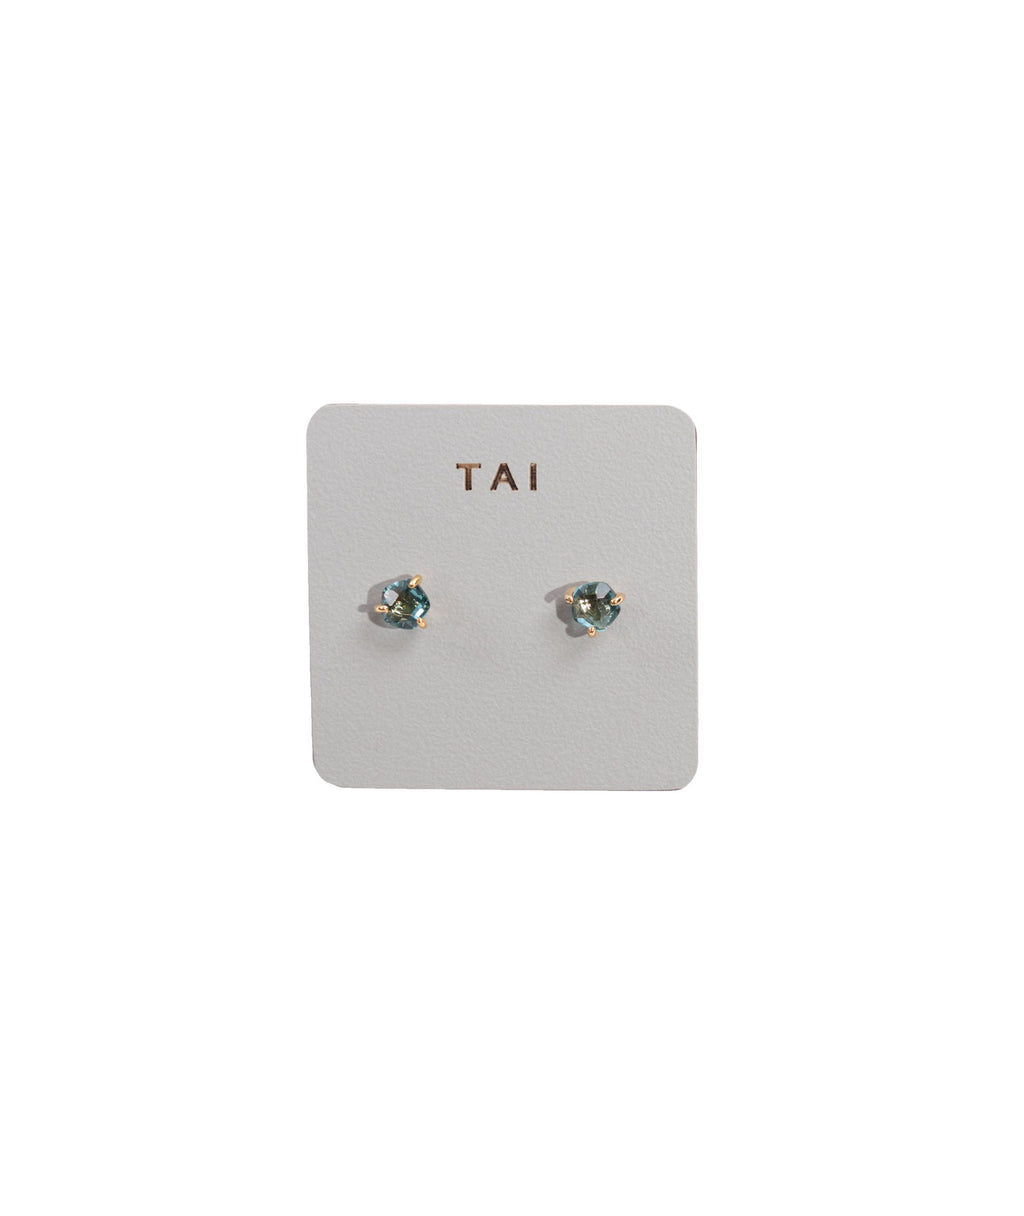 TAI Aqua Glass Stud Earrings